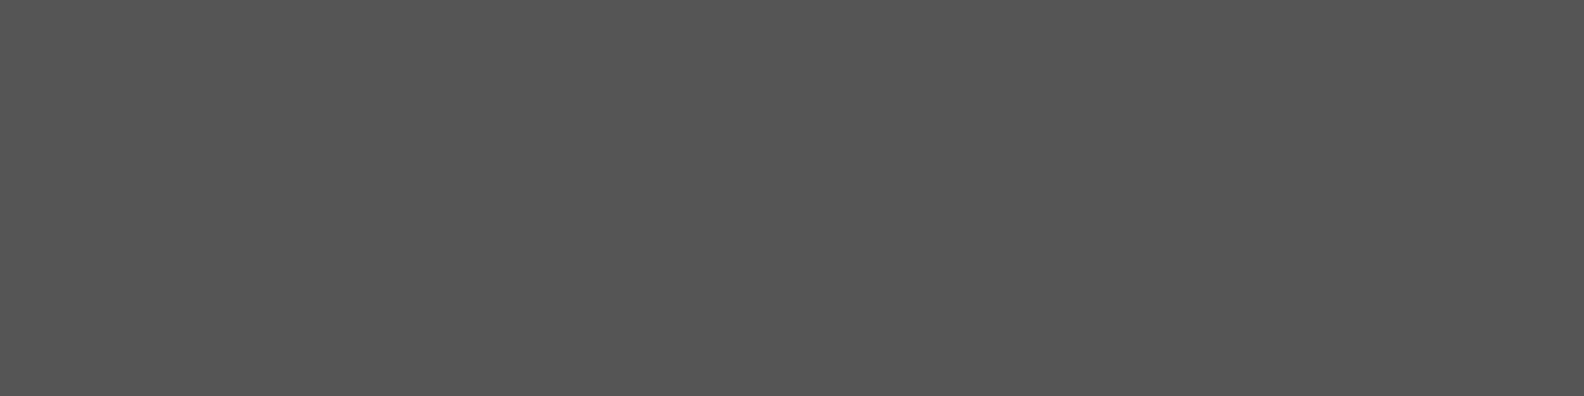 1584x396 Davys Grey Solid Color Background